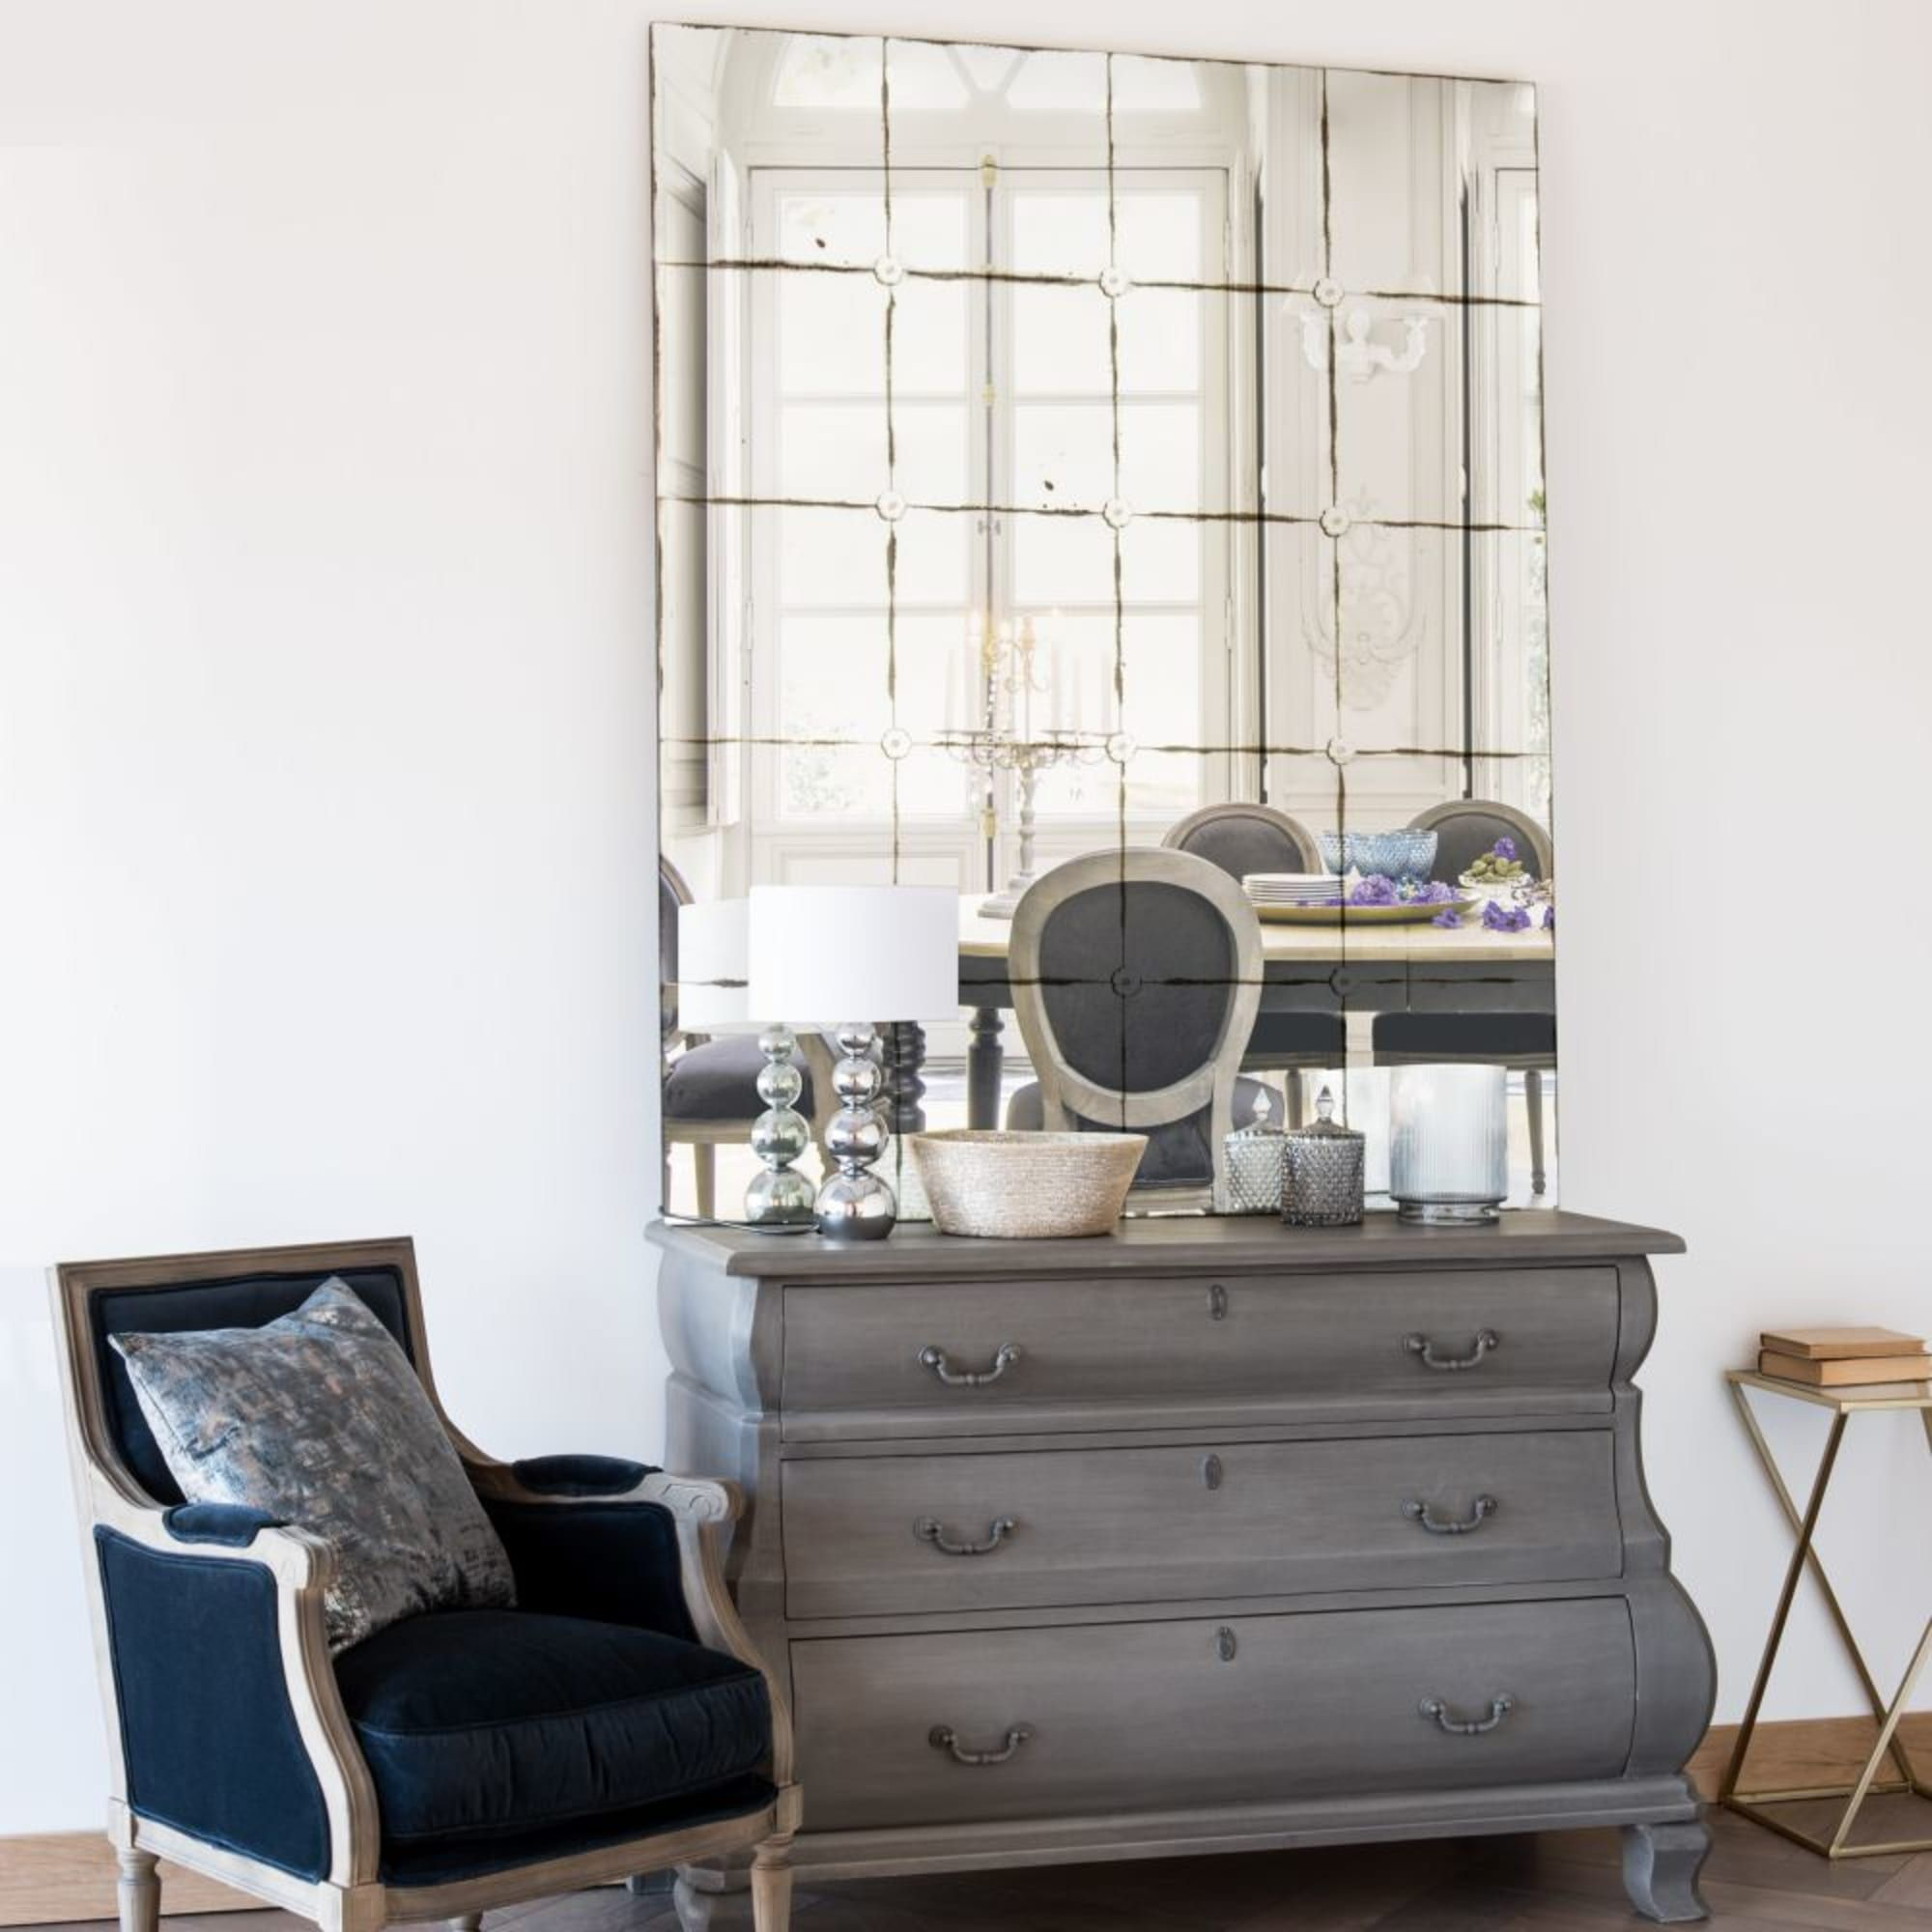 Aged Effect Mirror 120x150 Angelina Maisons Du Monde In 2020 Dining Room Bench Seating Living Room Chairs Dining Room Furniture